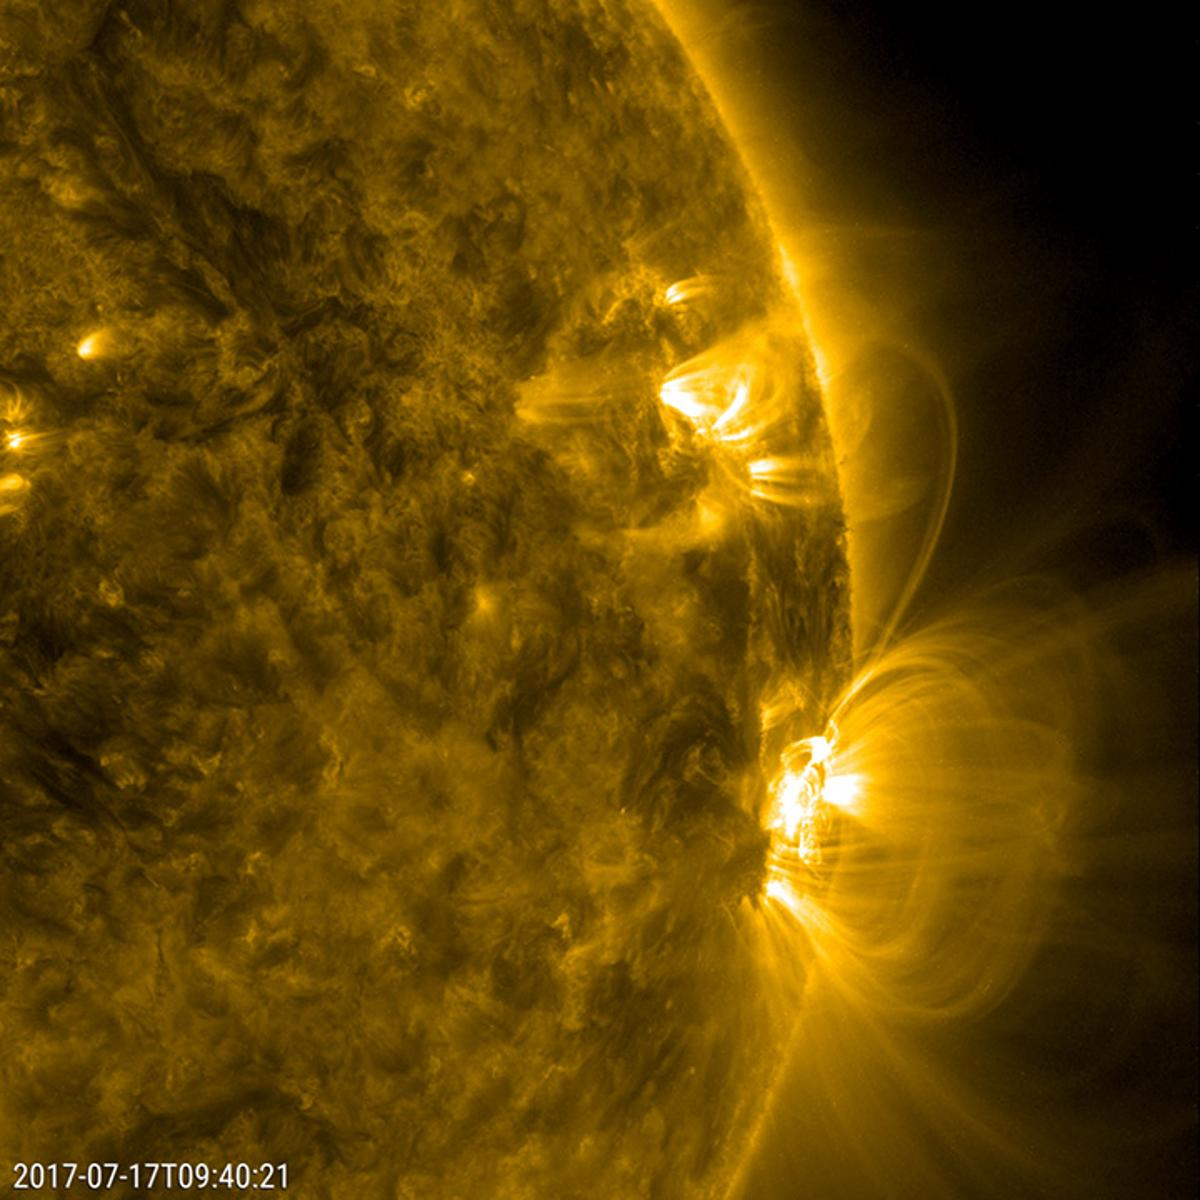 An image showing an active region of the Sun, taken in July 2017 by NASA's Solar Dynamics Observatory